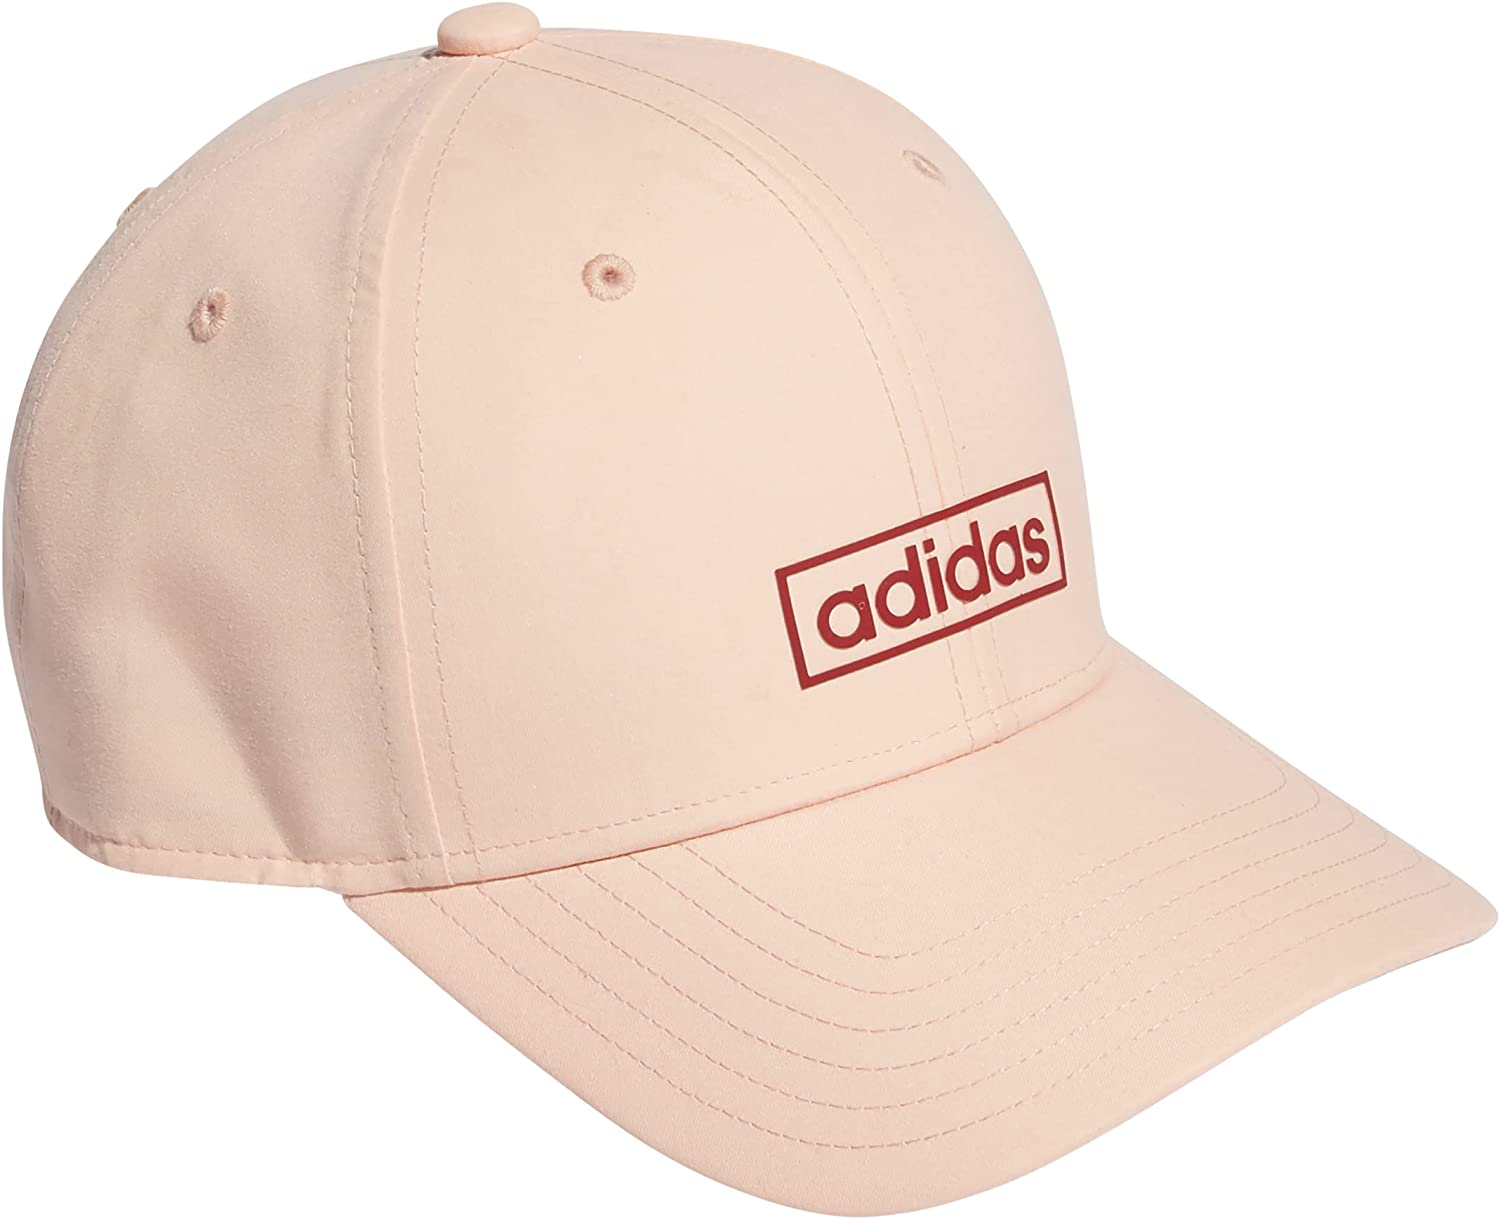 adidas Women's Core Structured Adjustable Cap, ONE SIZE